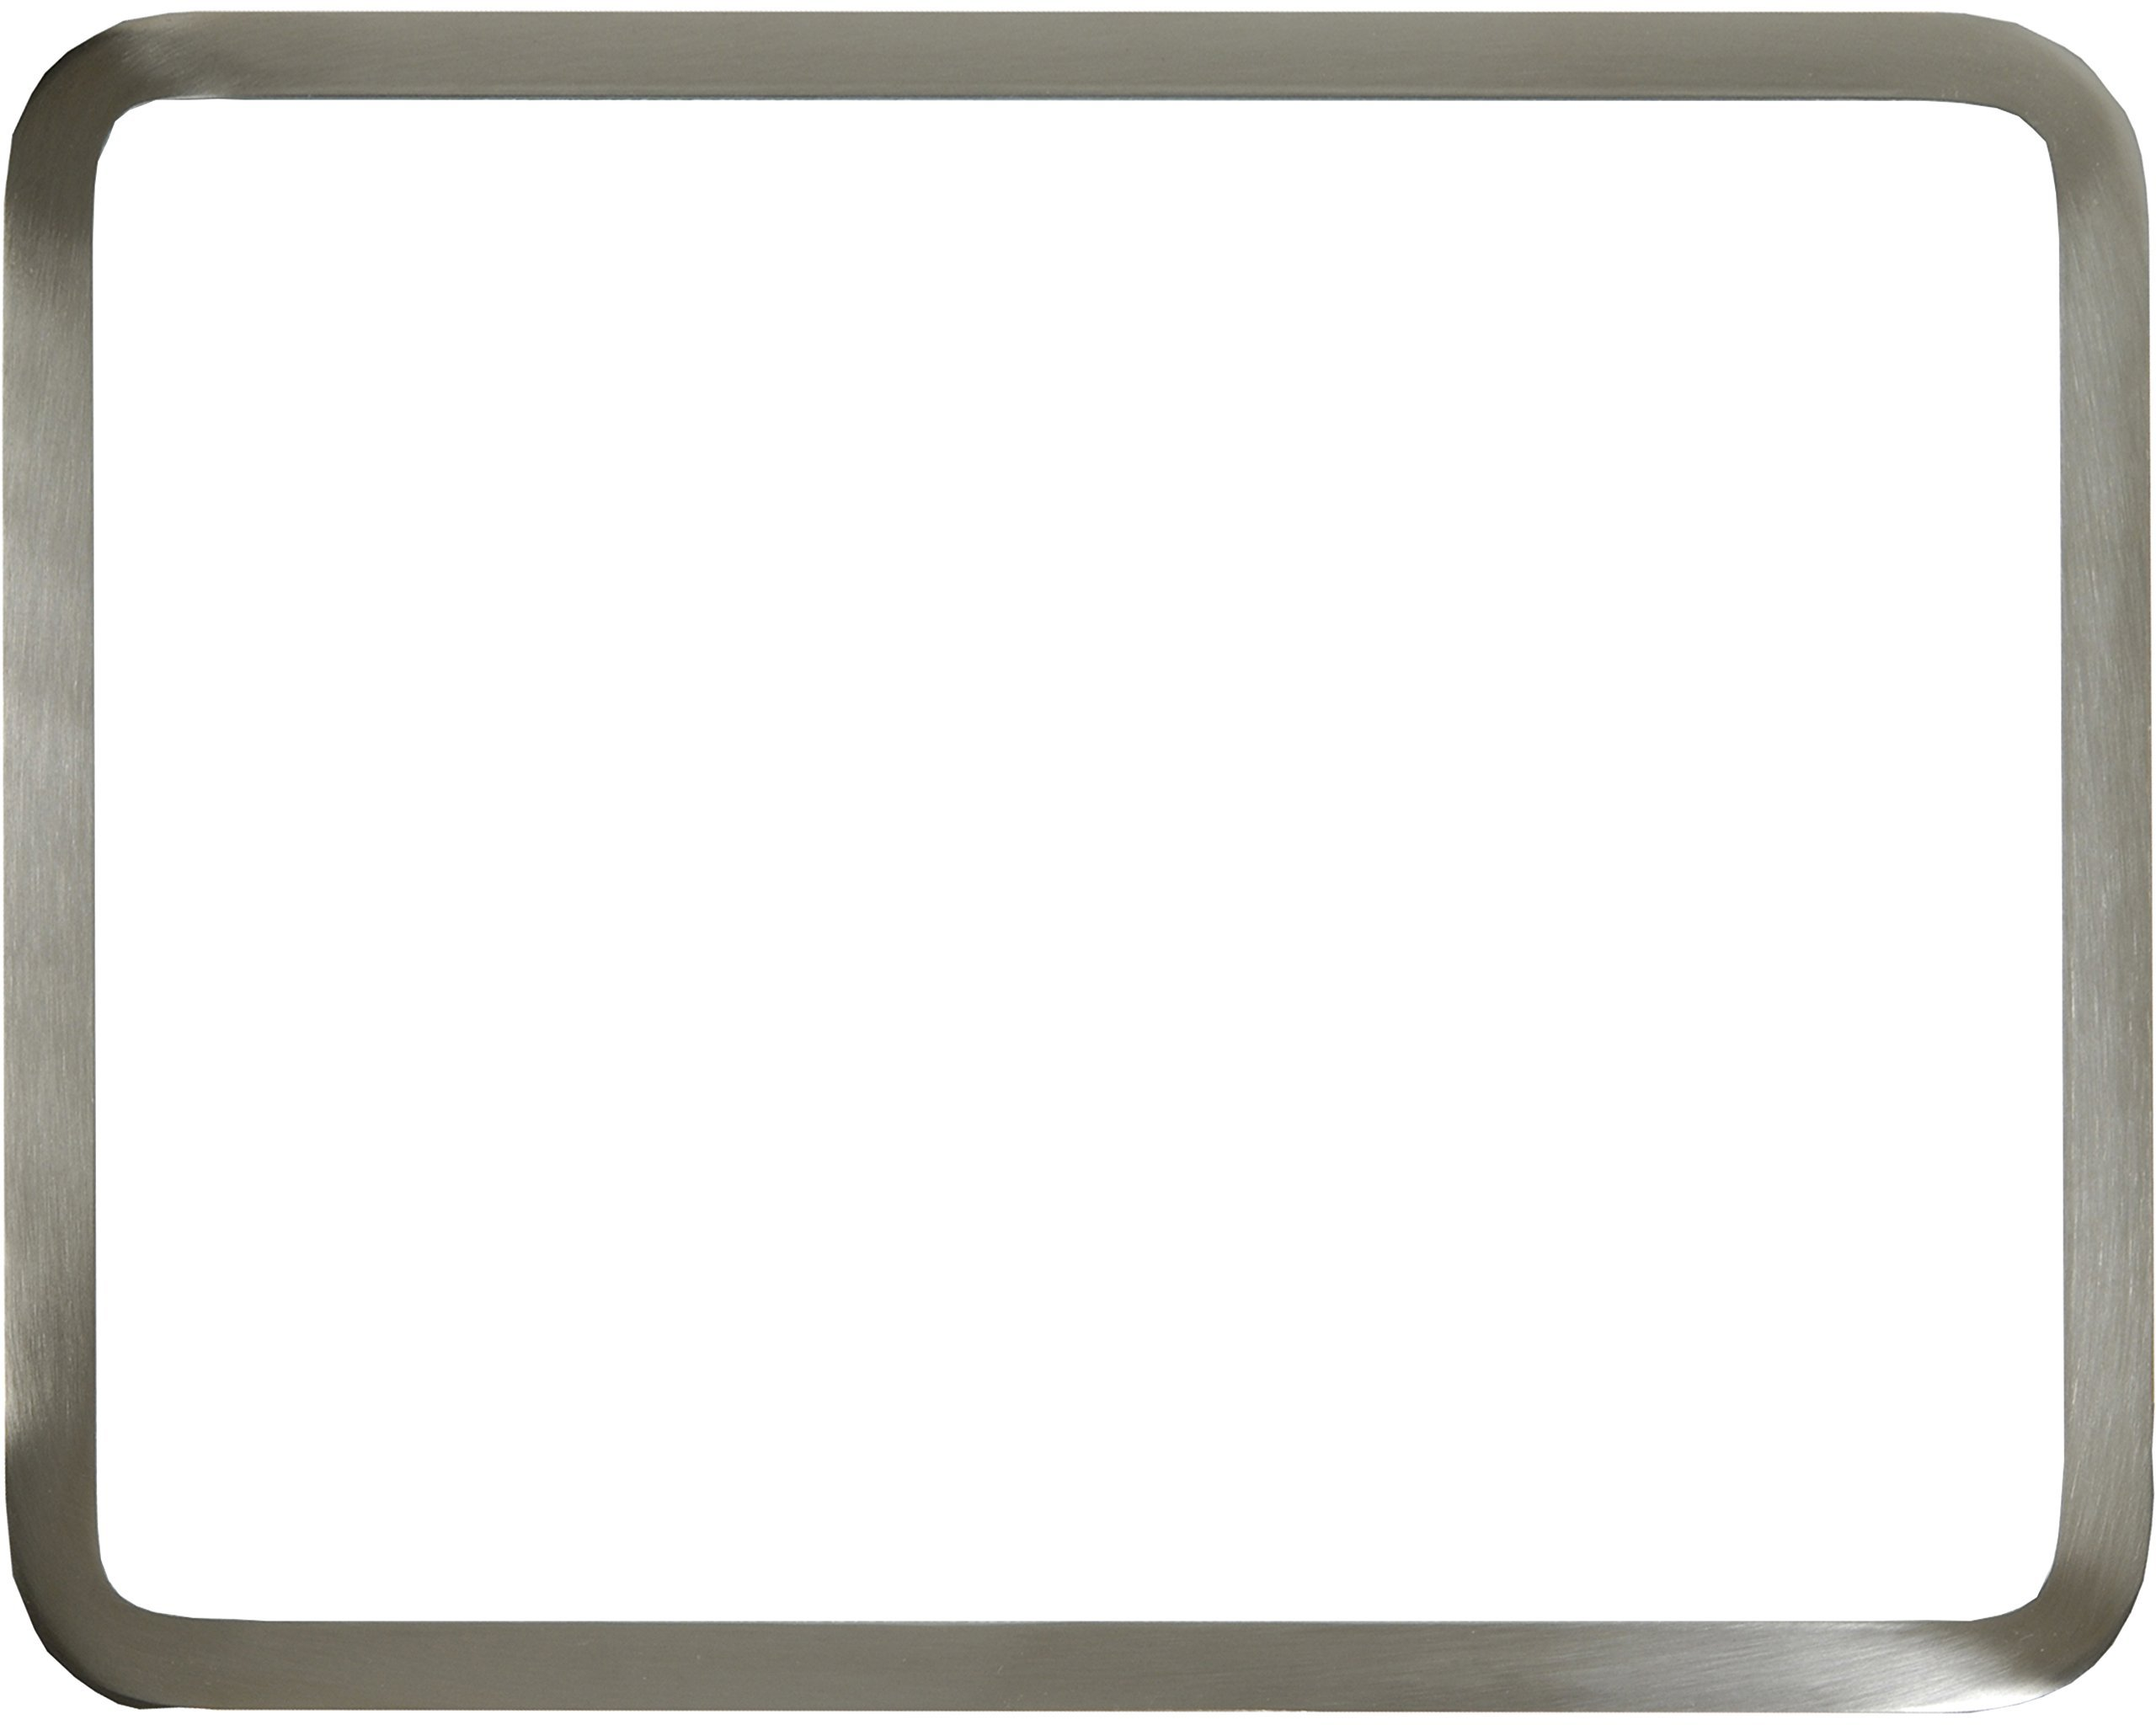 Vance Surface Saver 1S41620SS 16 X 20'' Stainless Steel Frame for Built-in Surface Saver Cutting Board, Stainless Steel